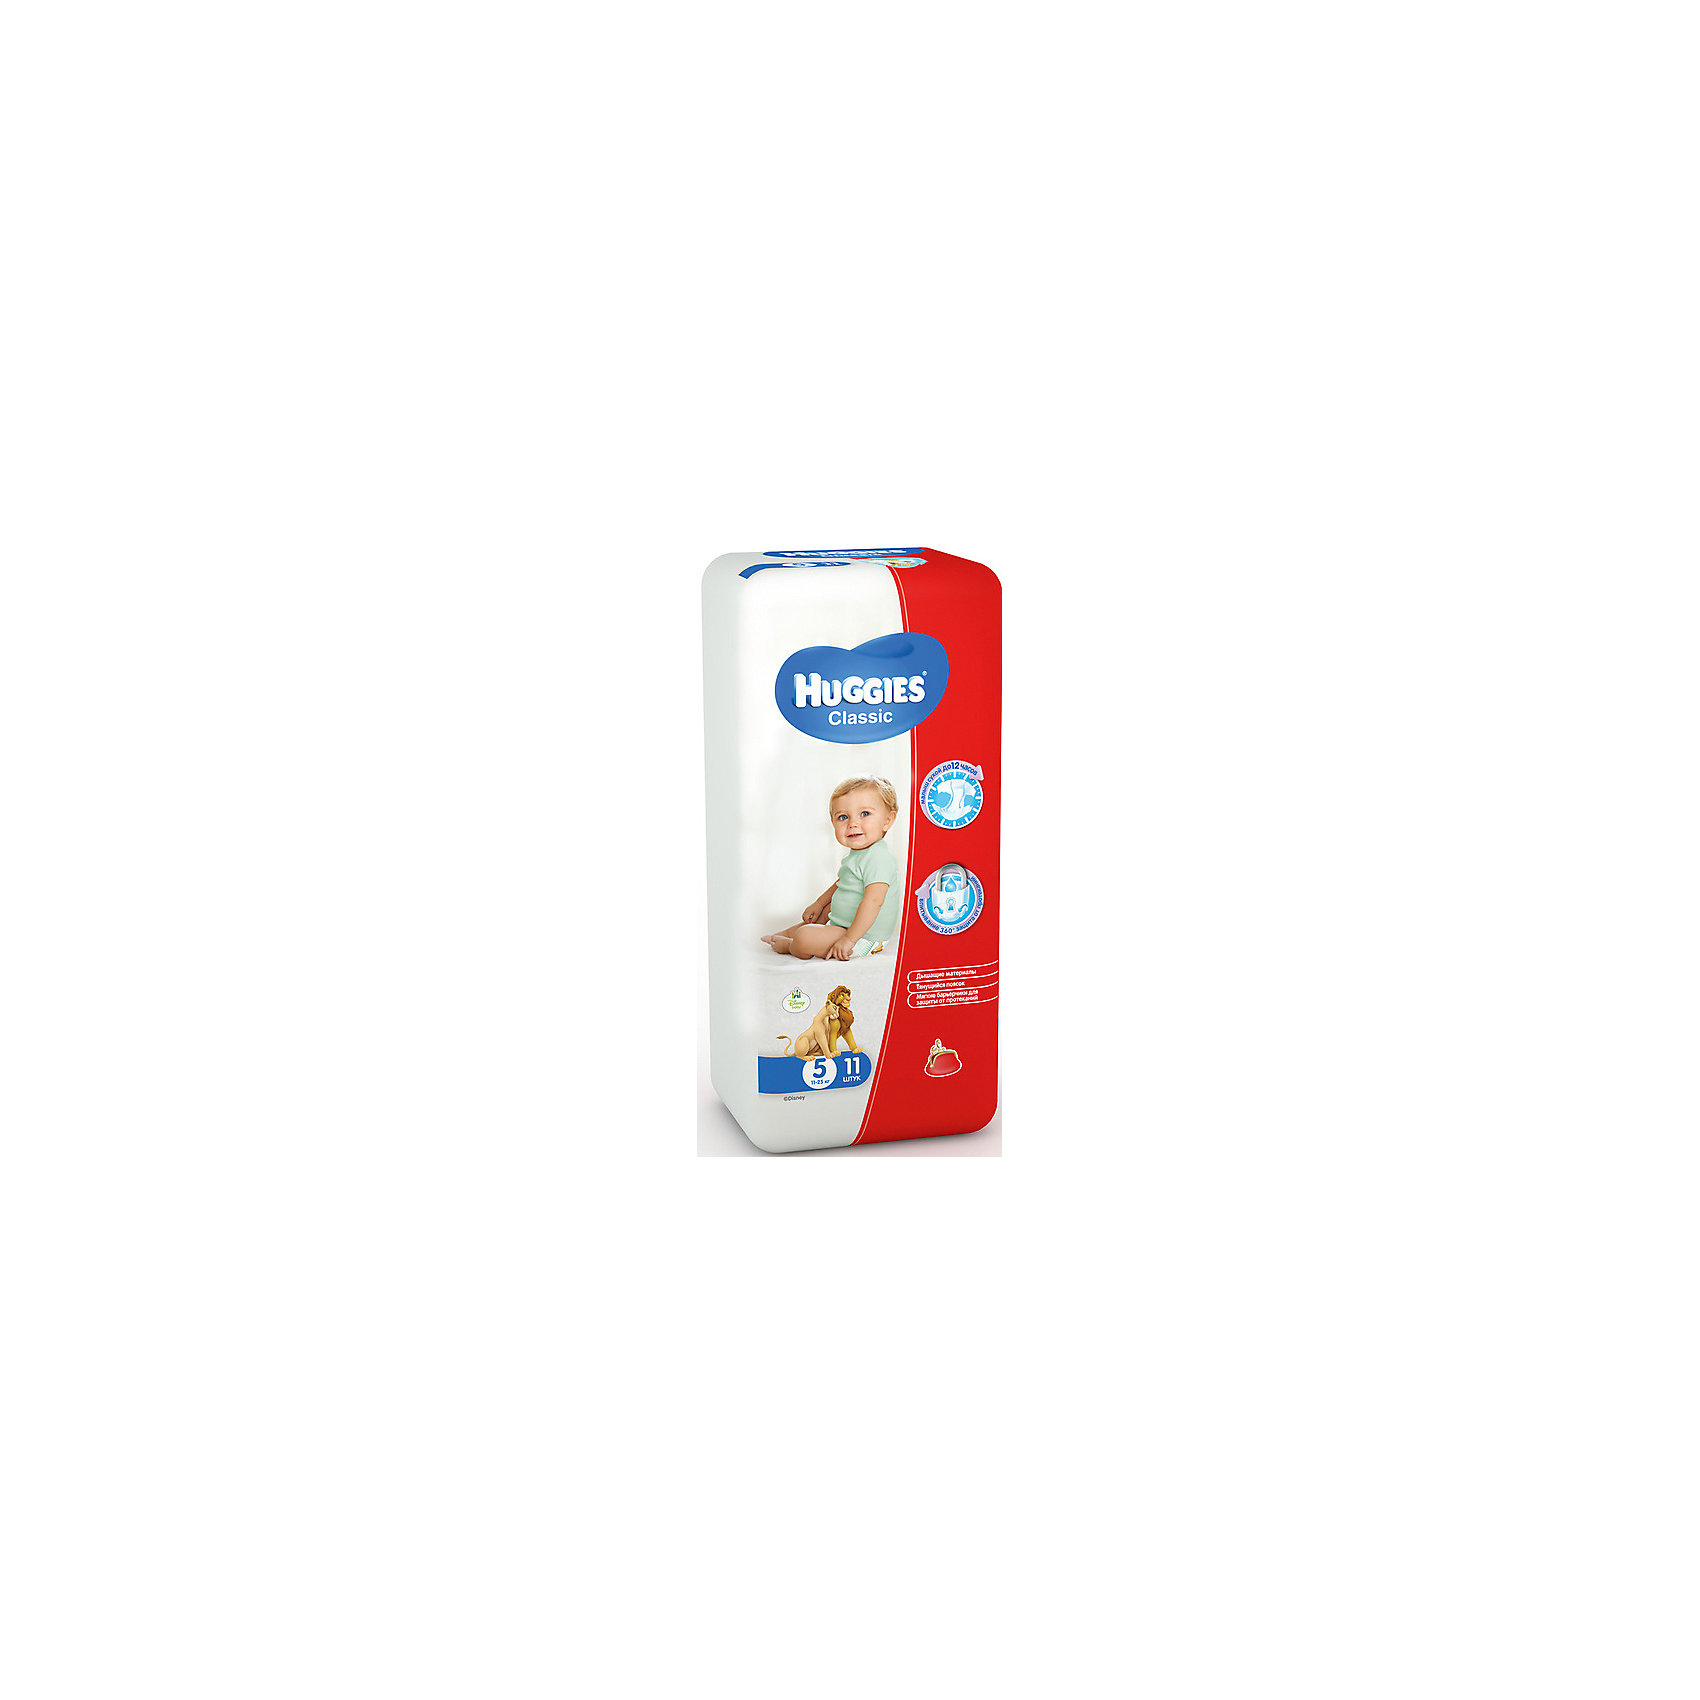 HUGGIES Подгузники Classic 5, 11-25 кг, 11шт., Huggies greenty подгузники greenty 5 13 кг 32 шт